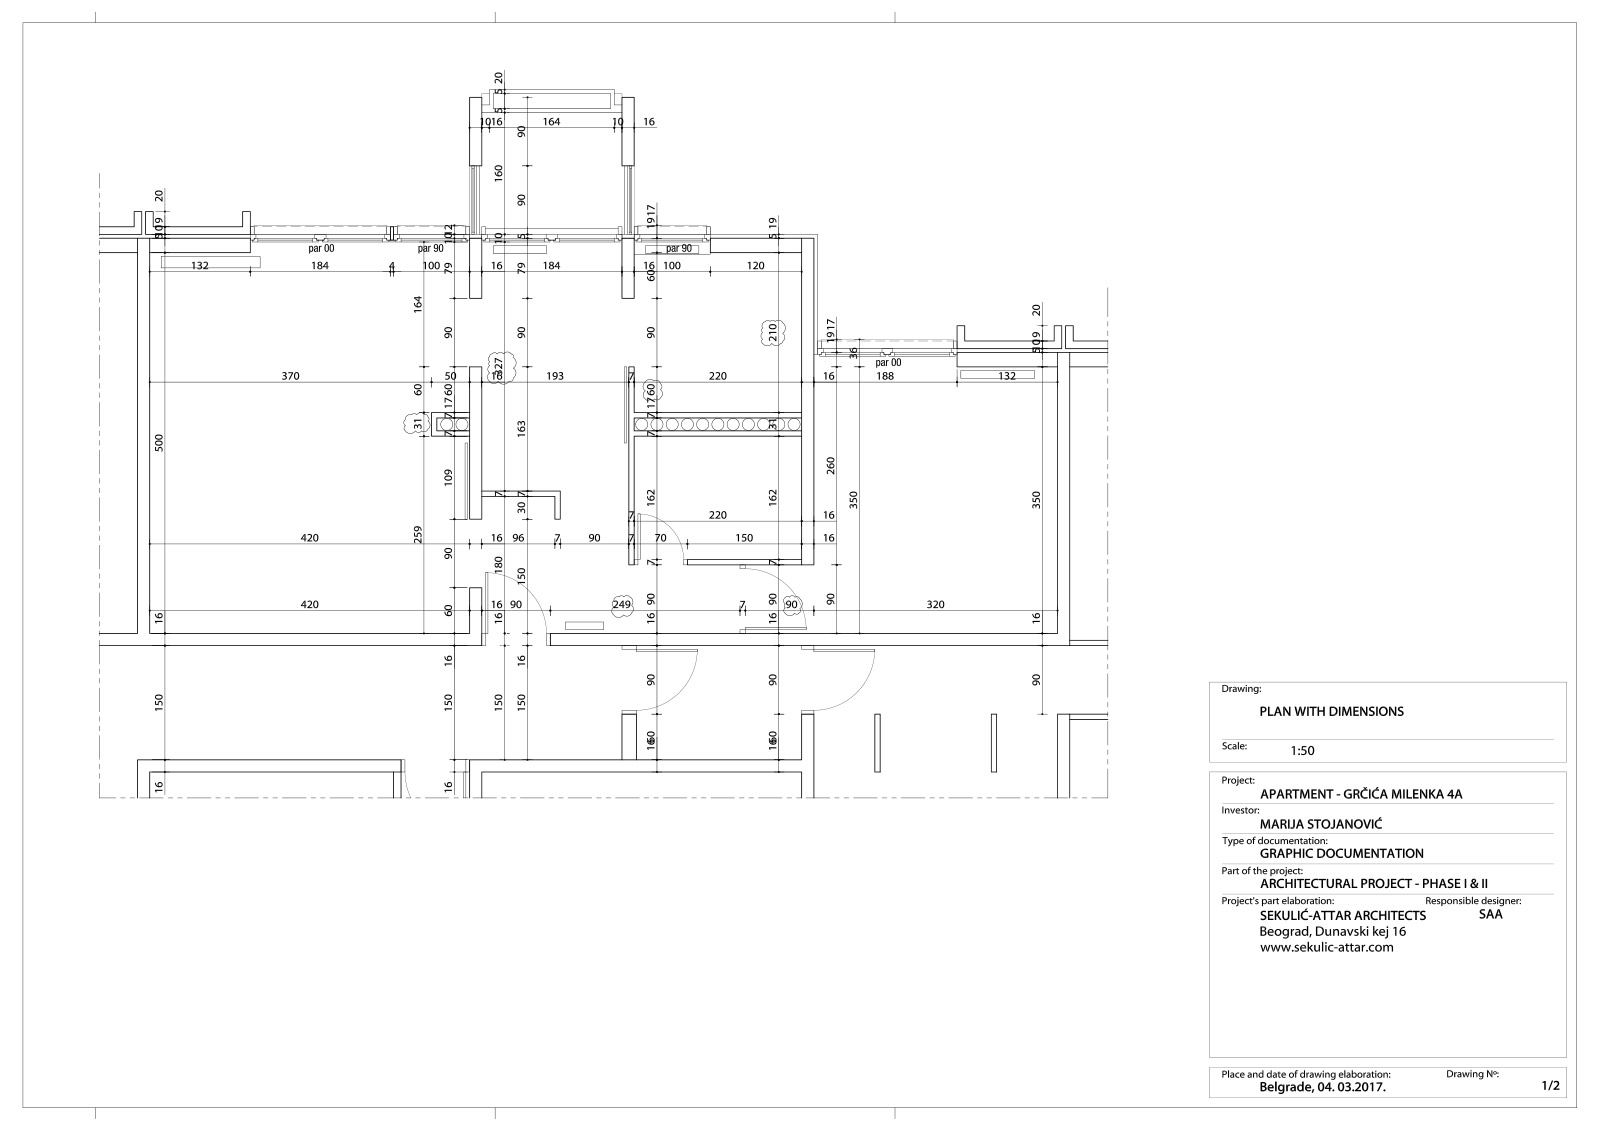 apartment in grcica milenka belgrade architectural drawing floor plan with dimensions